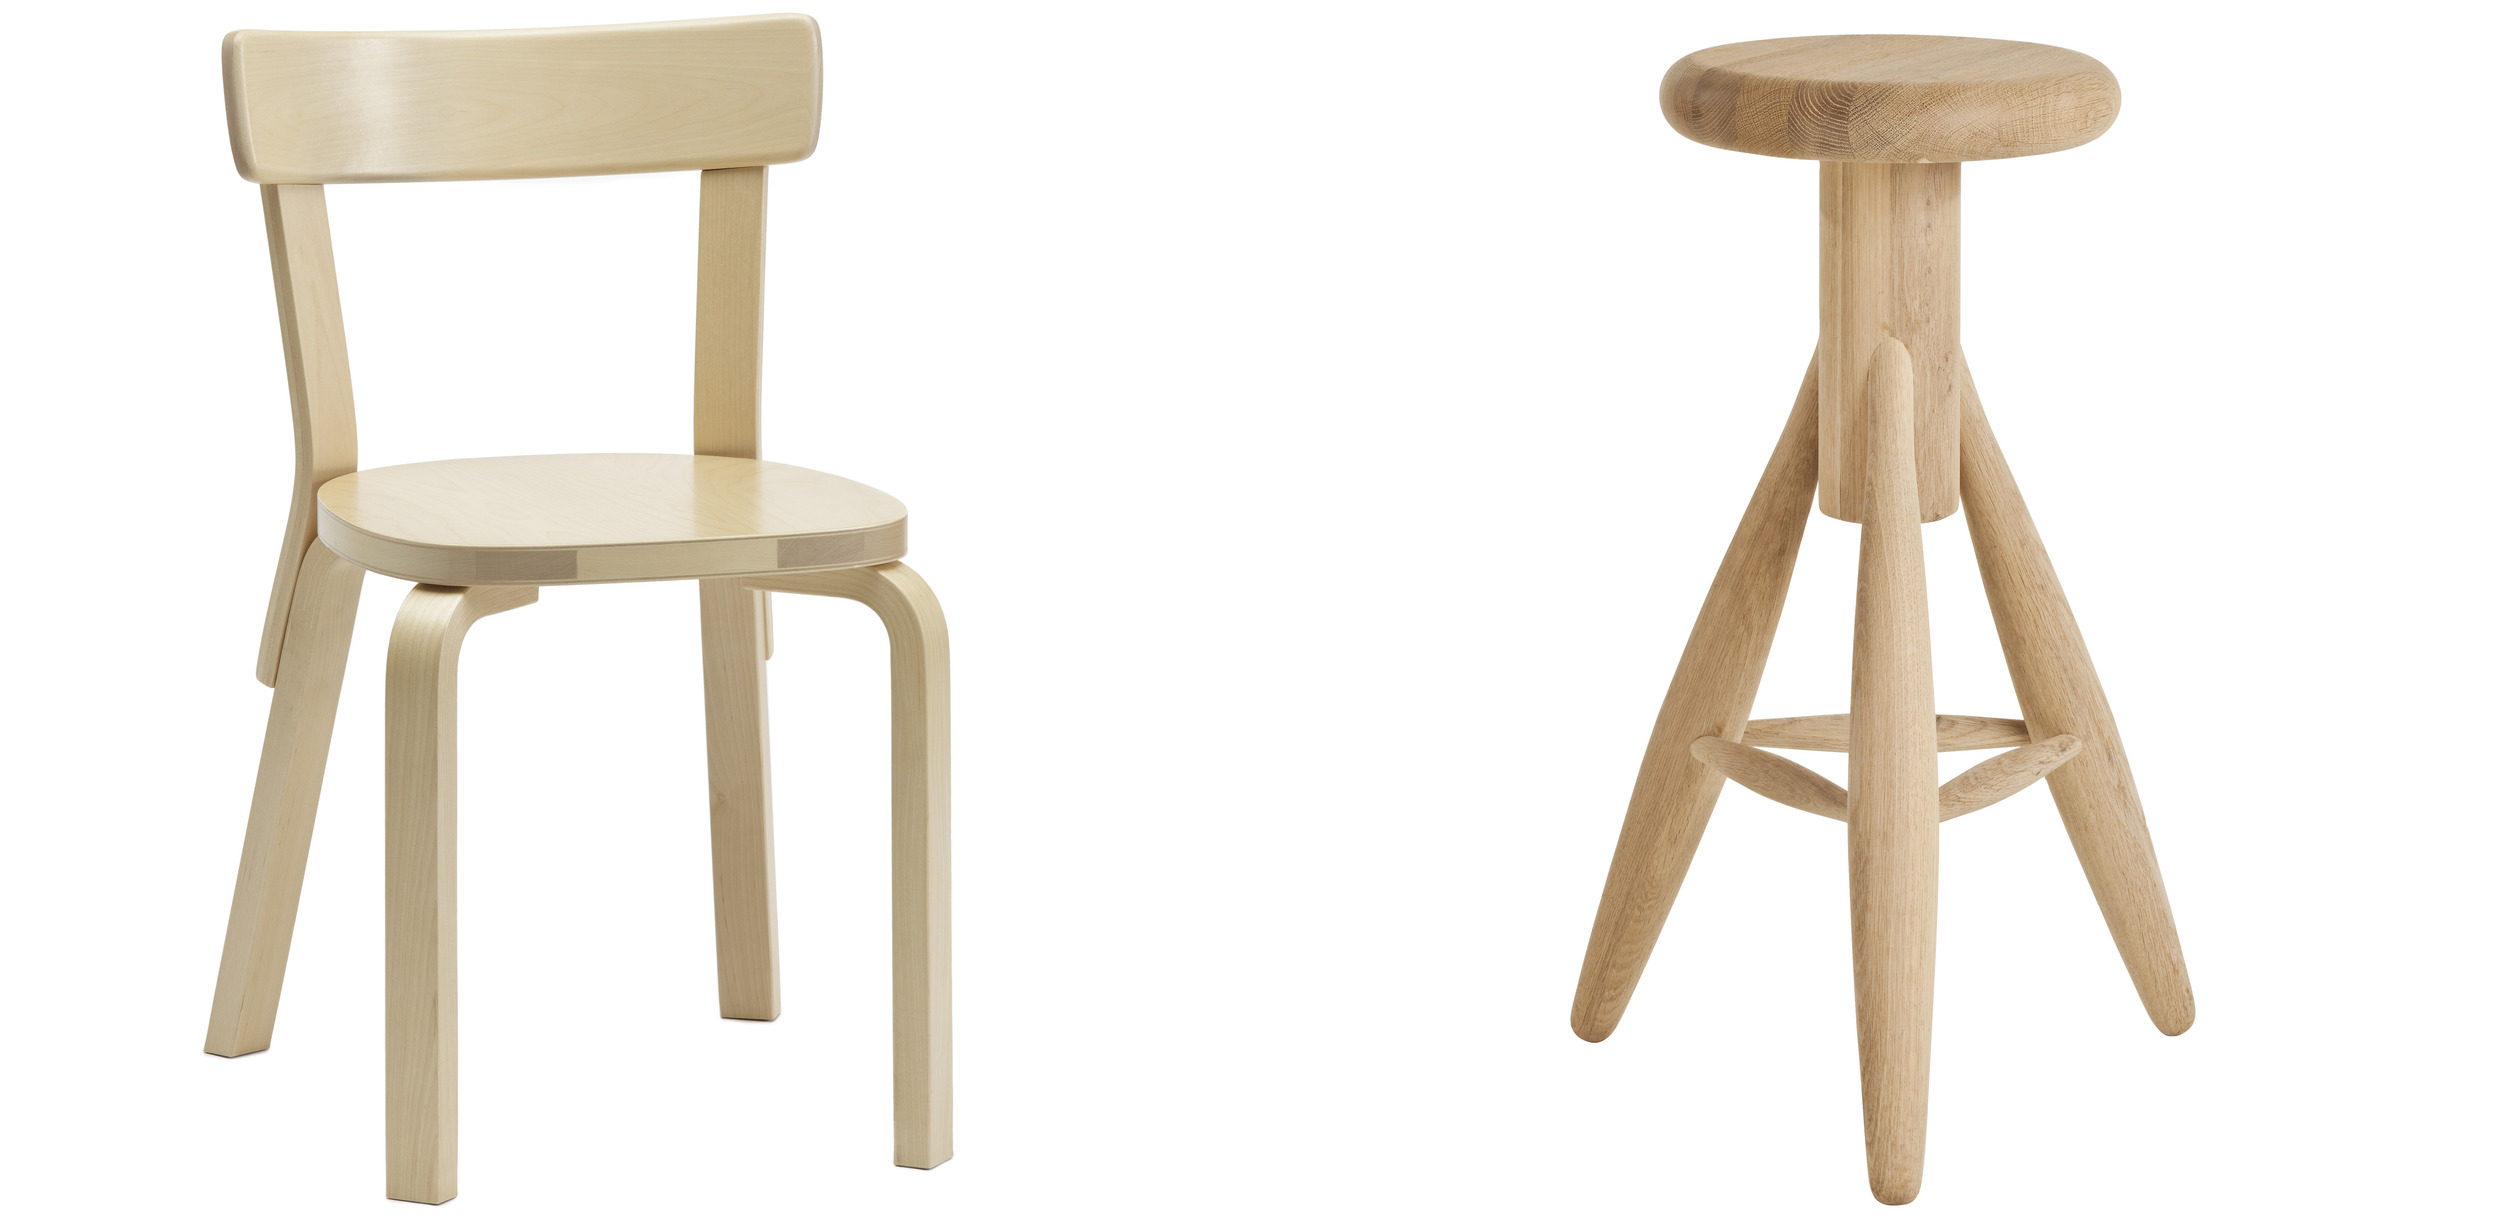 Chair 69 designed by Aalto in 1935 and still in production and the Rocket Stool by Eero Aarnio from 1995